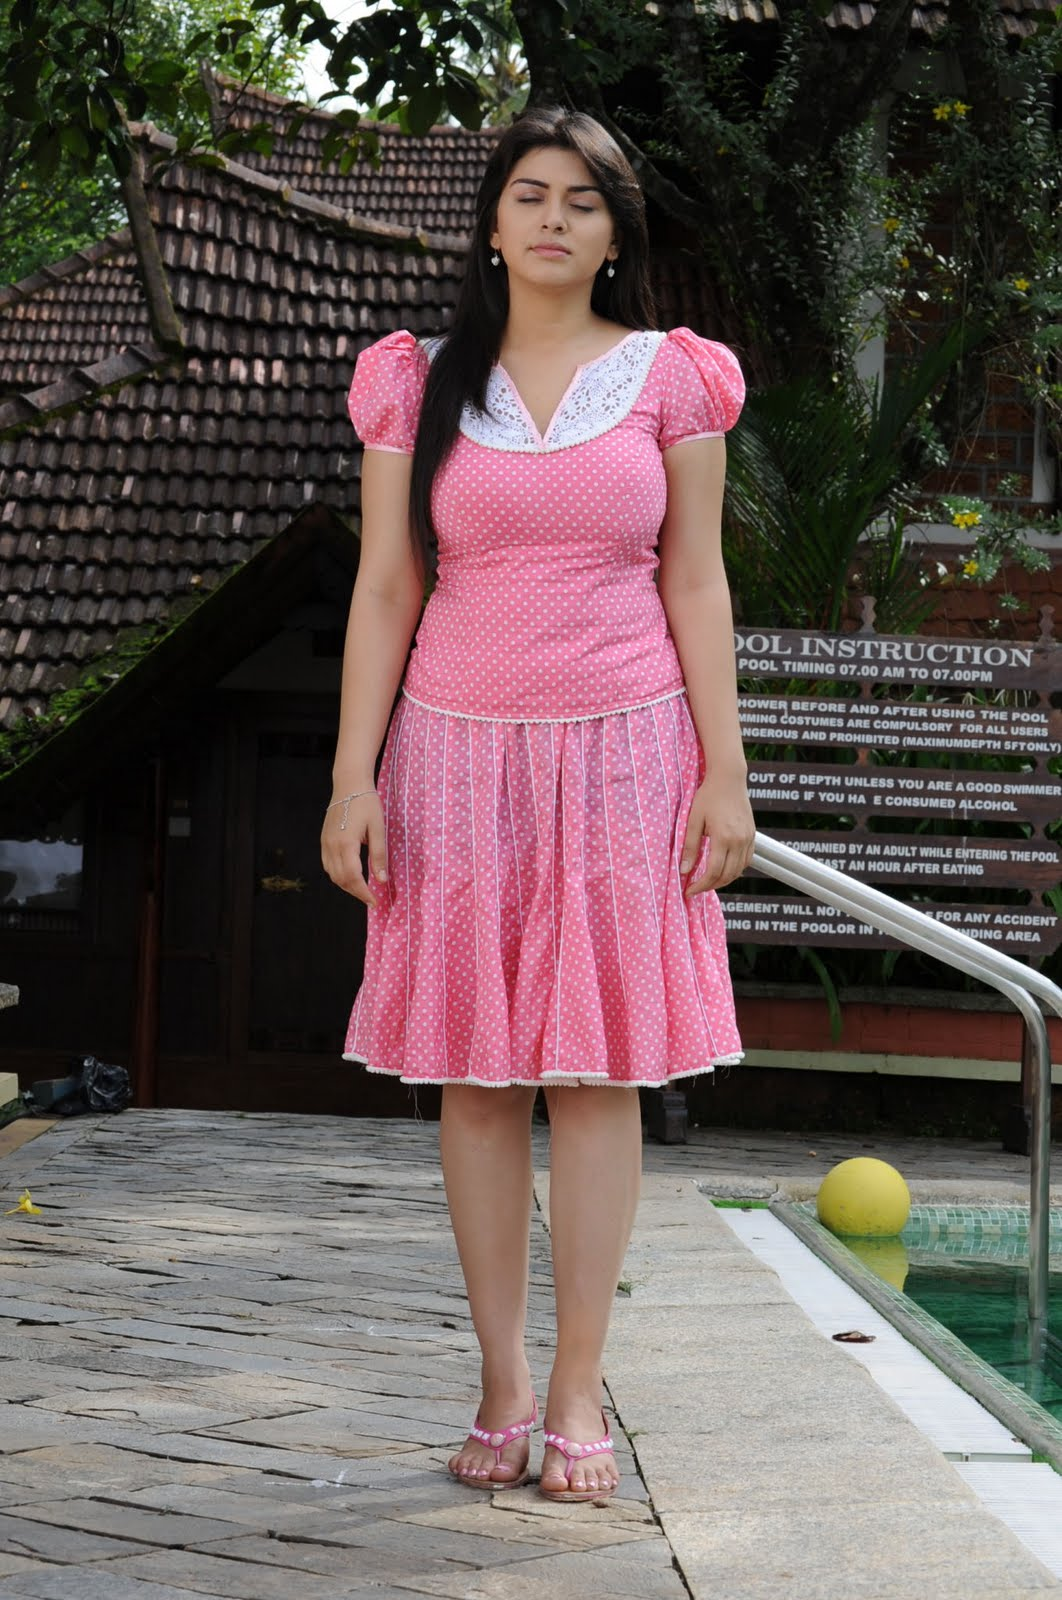 Latest News Olimpic 2012: Hansika Motwani In Oh My Friend Movie Stills